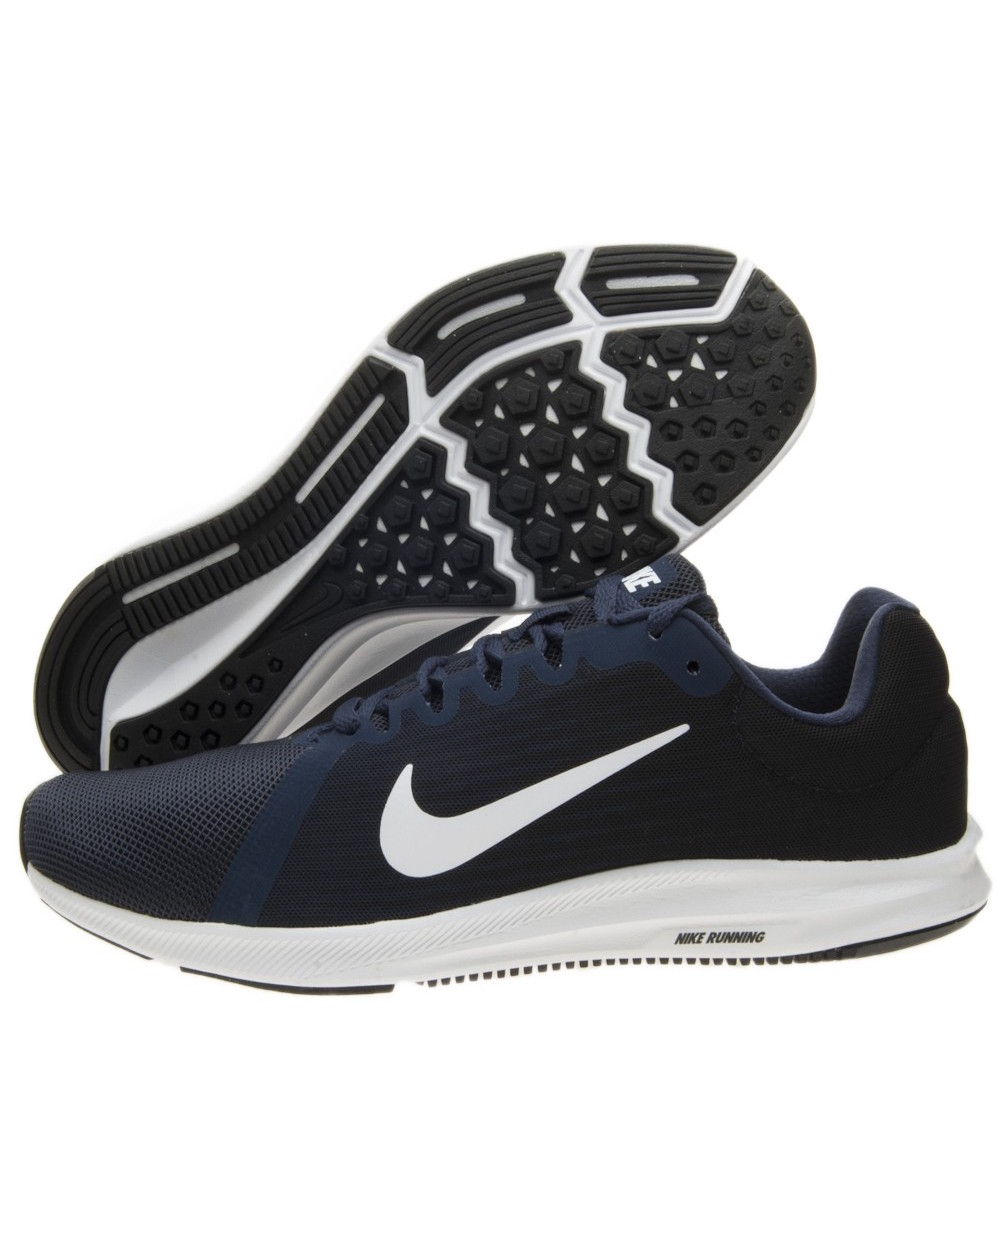 finest selection 2fad7 c5ca4 Nike-Chaussures-sportif-Sneakers-Trainers-Shoes-Sport-Running-